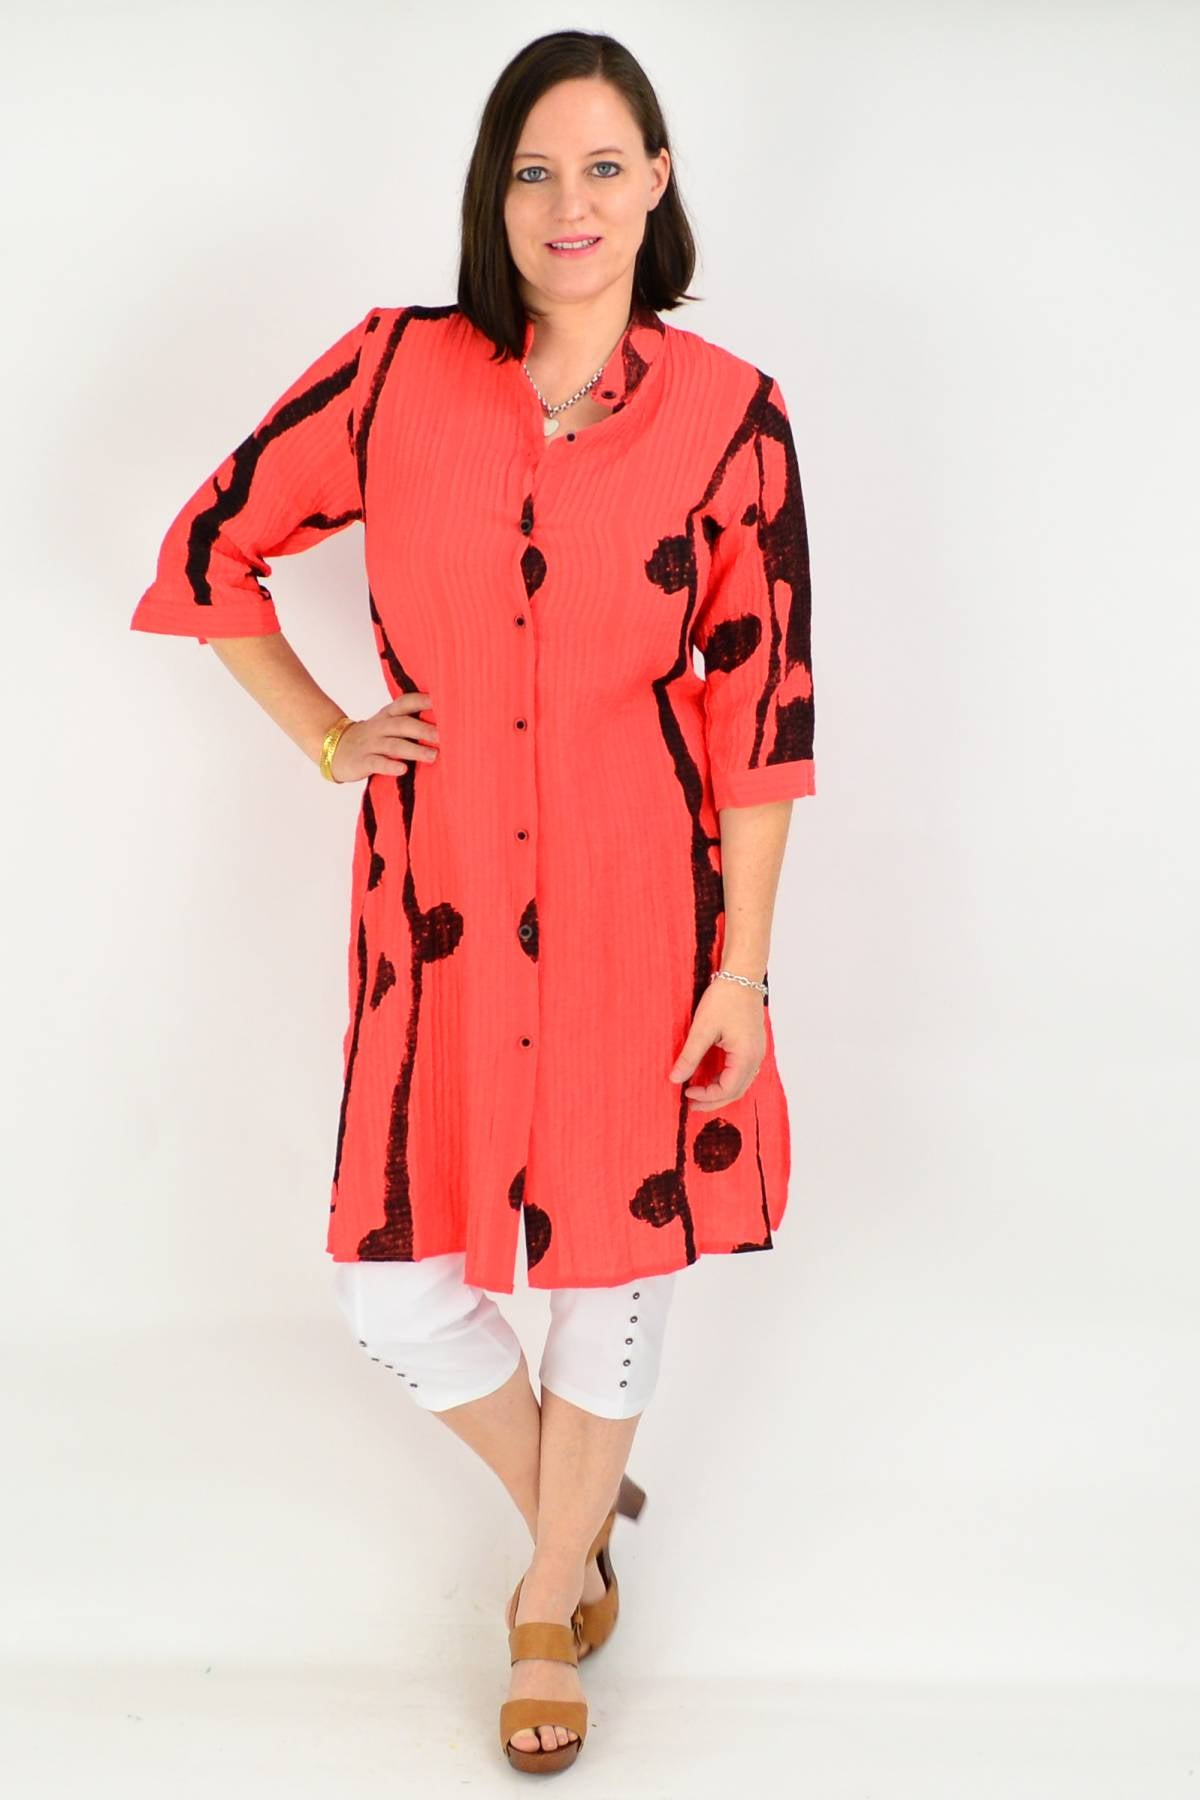 Burnt Orange Button up Long Tunic Shirt | I Love Tunics | Tunic Tops | Tunic Dresses | Women's Tops | Plus Size Australia | Mature Fashion